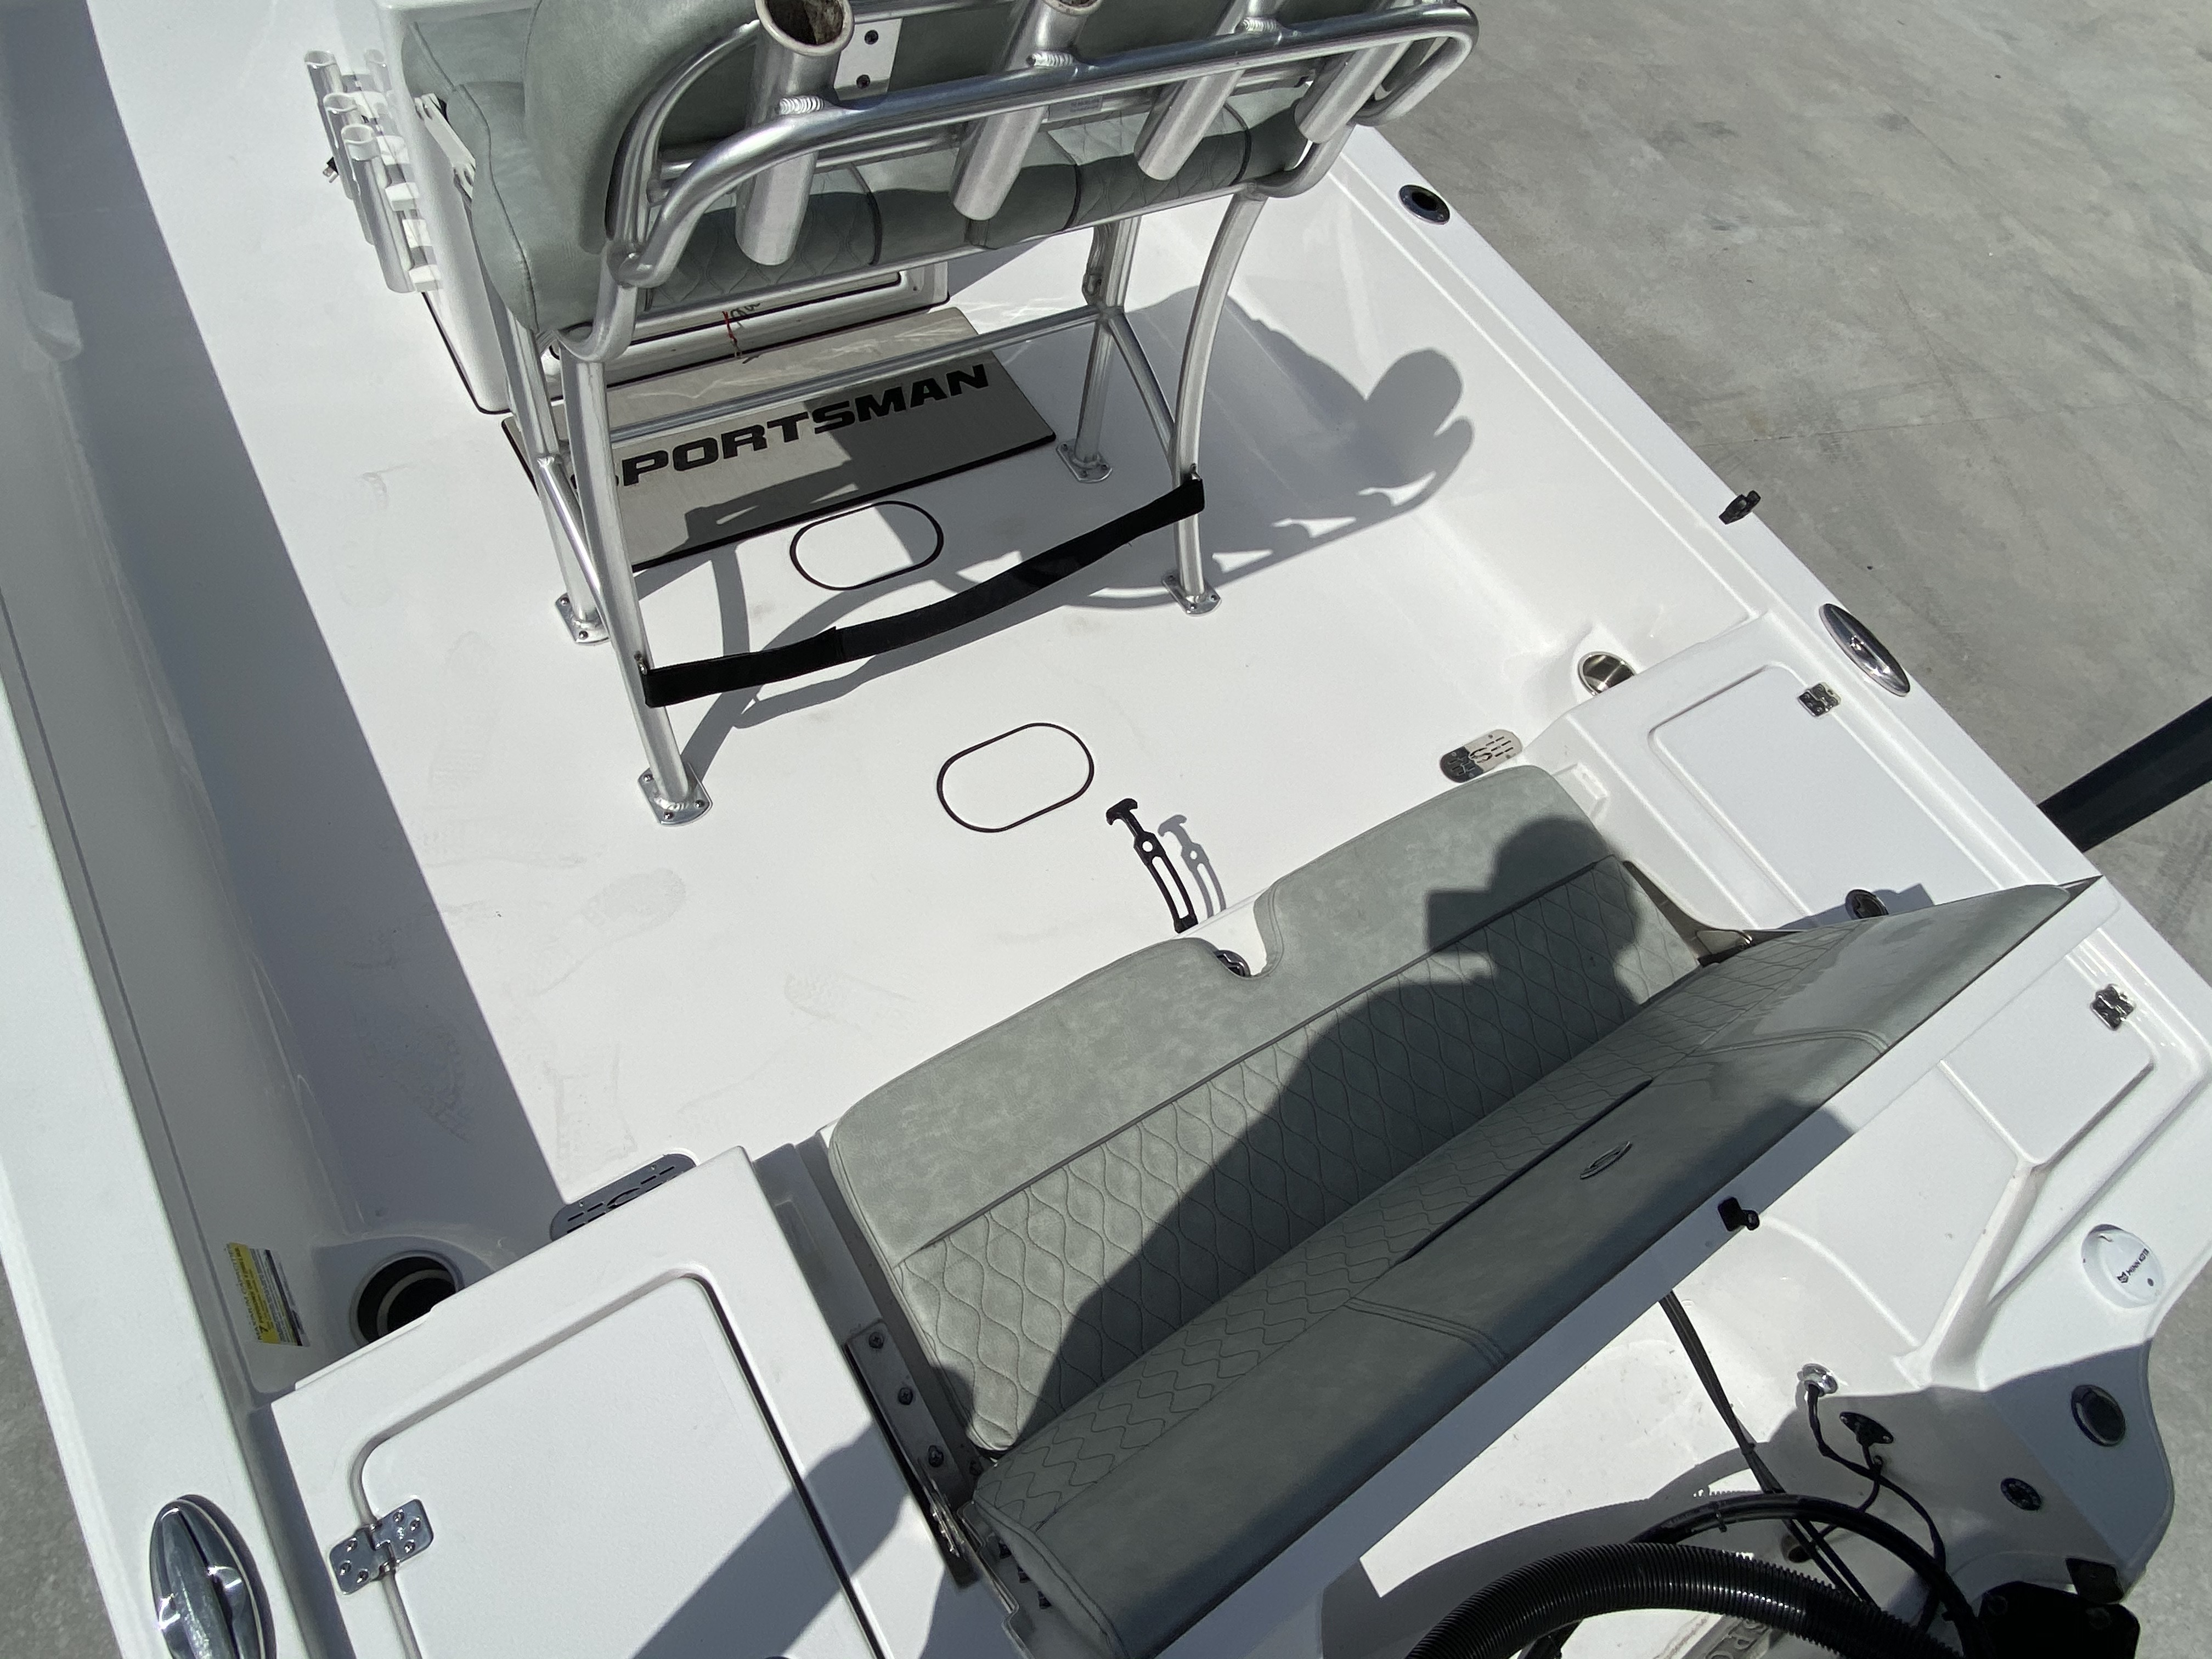 2019 Sportsman Boats boat for sale, model of the boat is 214 Tournament & Image # 4 of 26